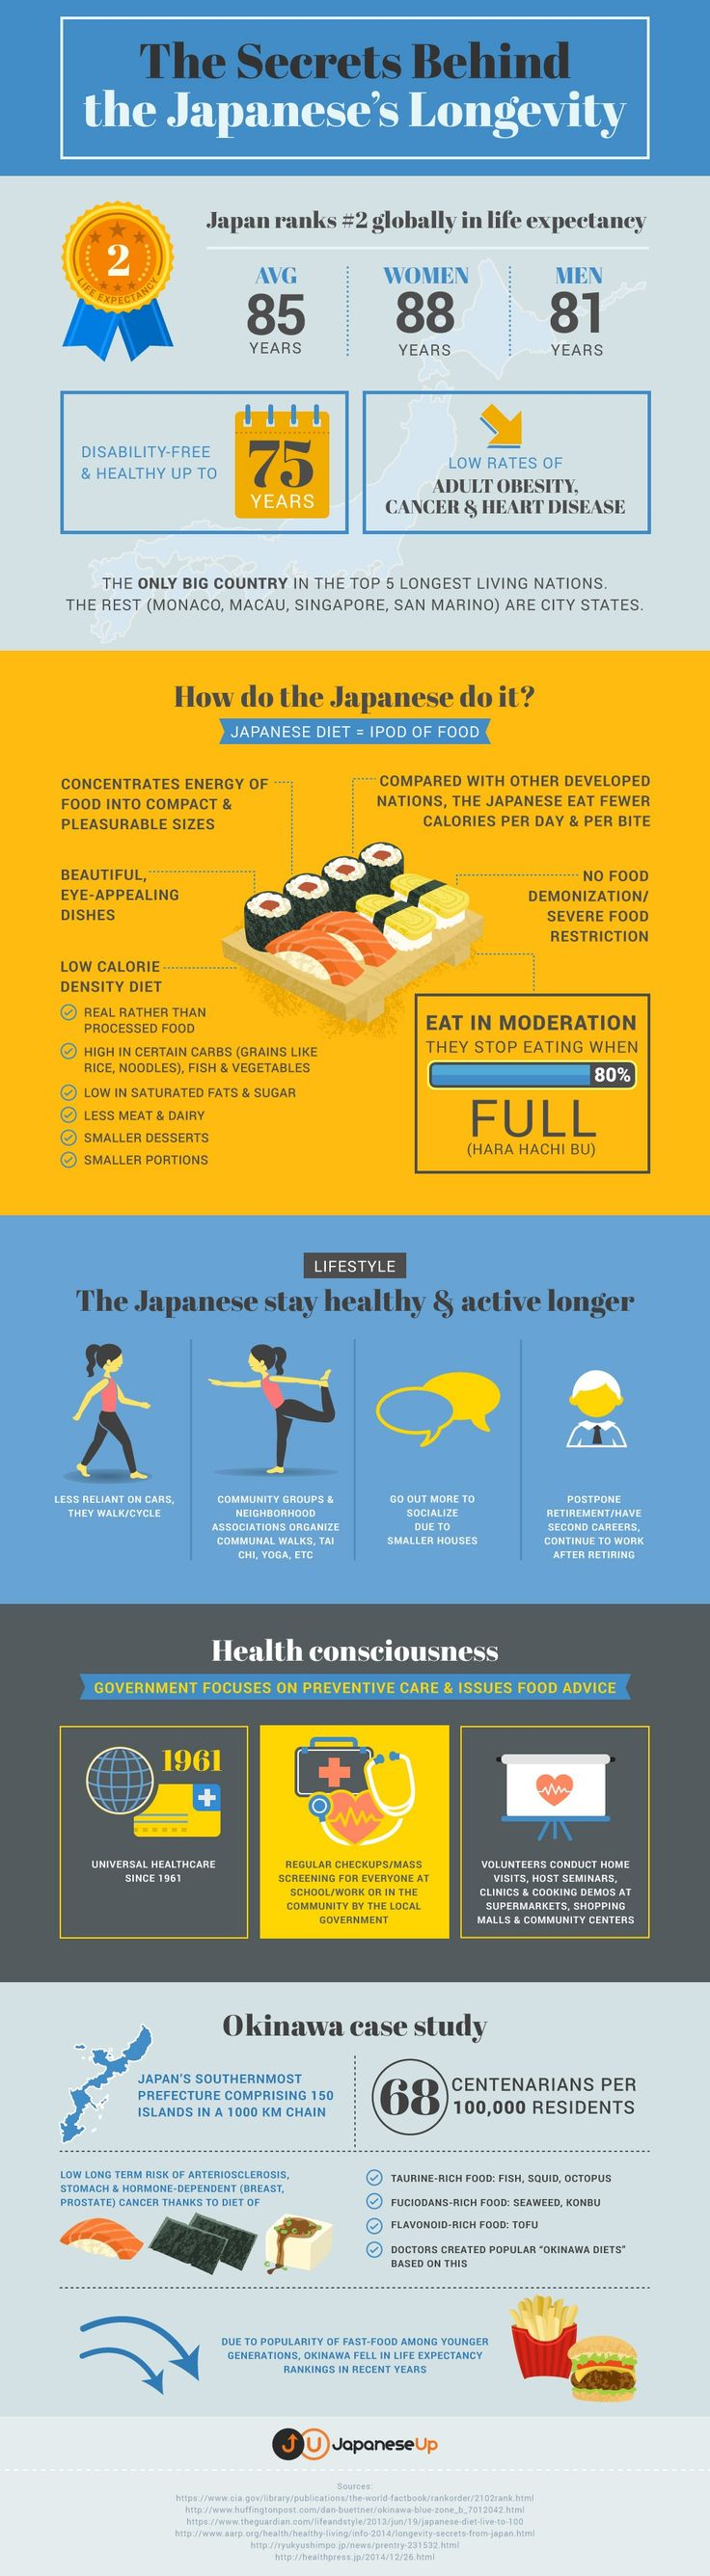 Longevity Diet: The Secrets Behind the Japanese's Longevity